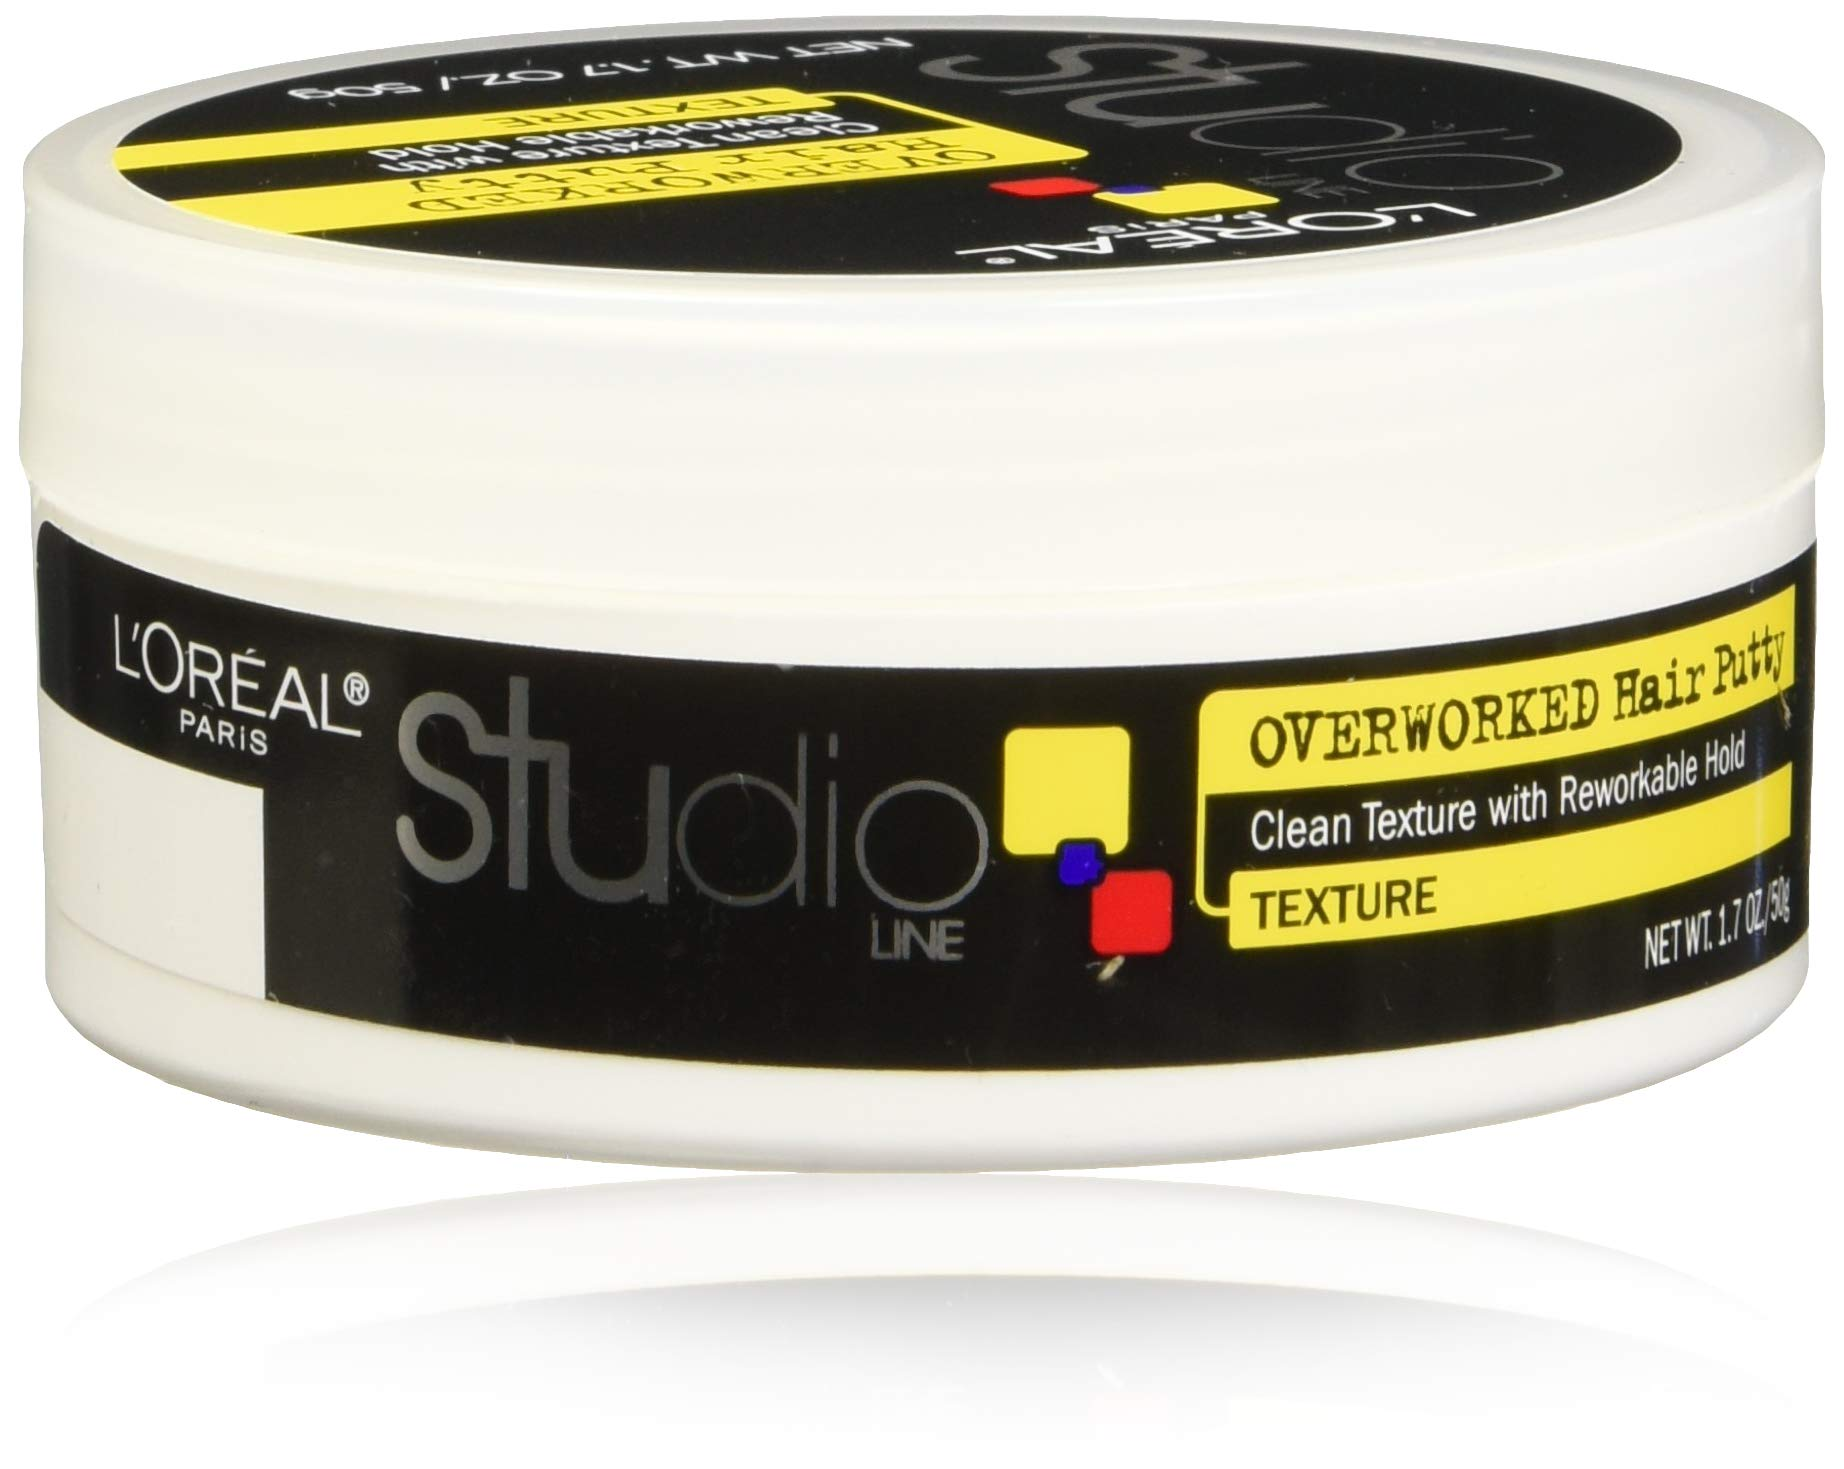 L'Oreal Paris Studio Line Overworked Hair Putty, 1.7 Ounce (Pack of 4) by L'Oreal Paris